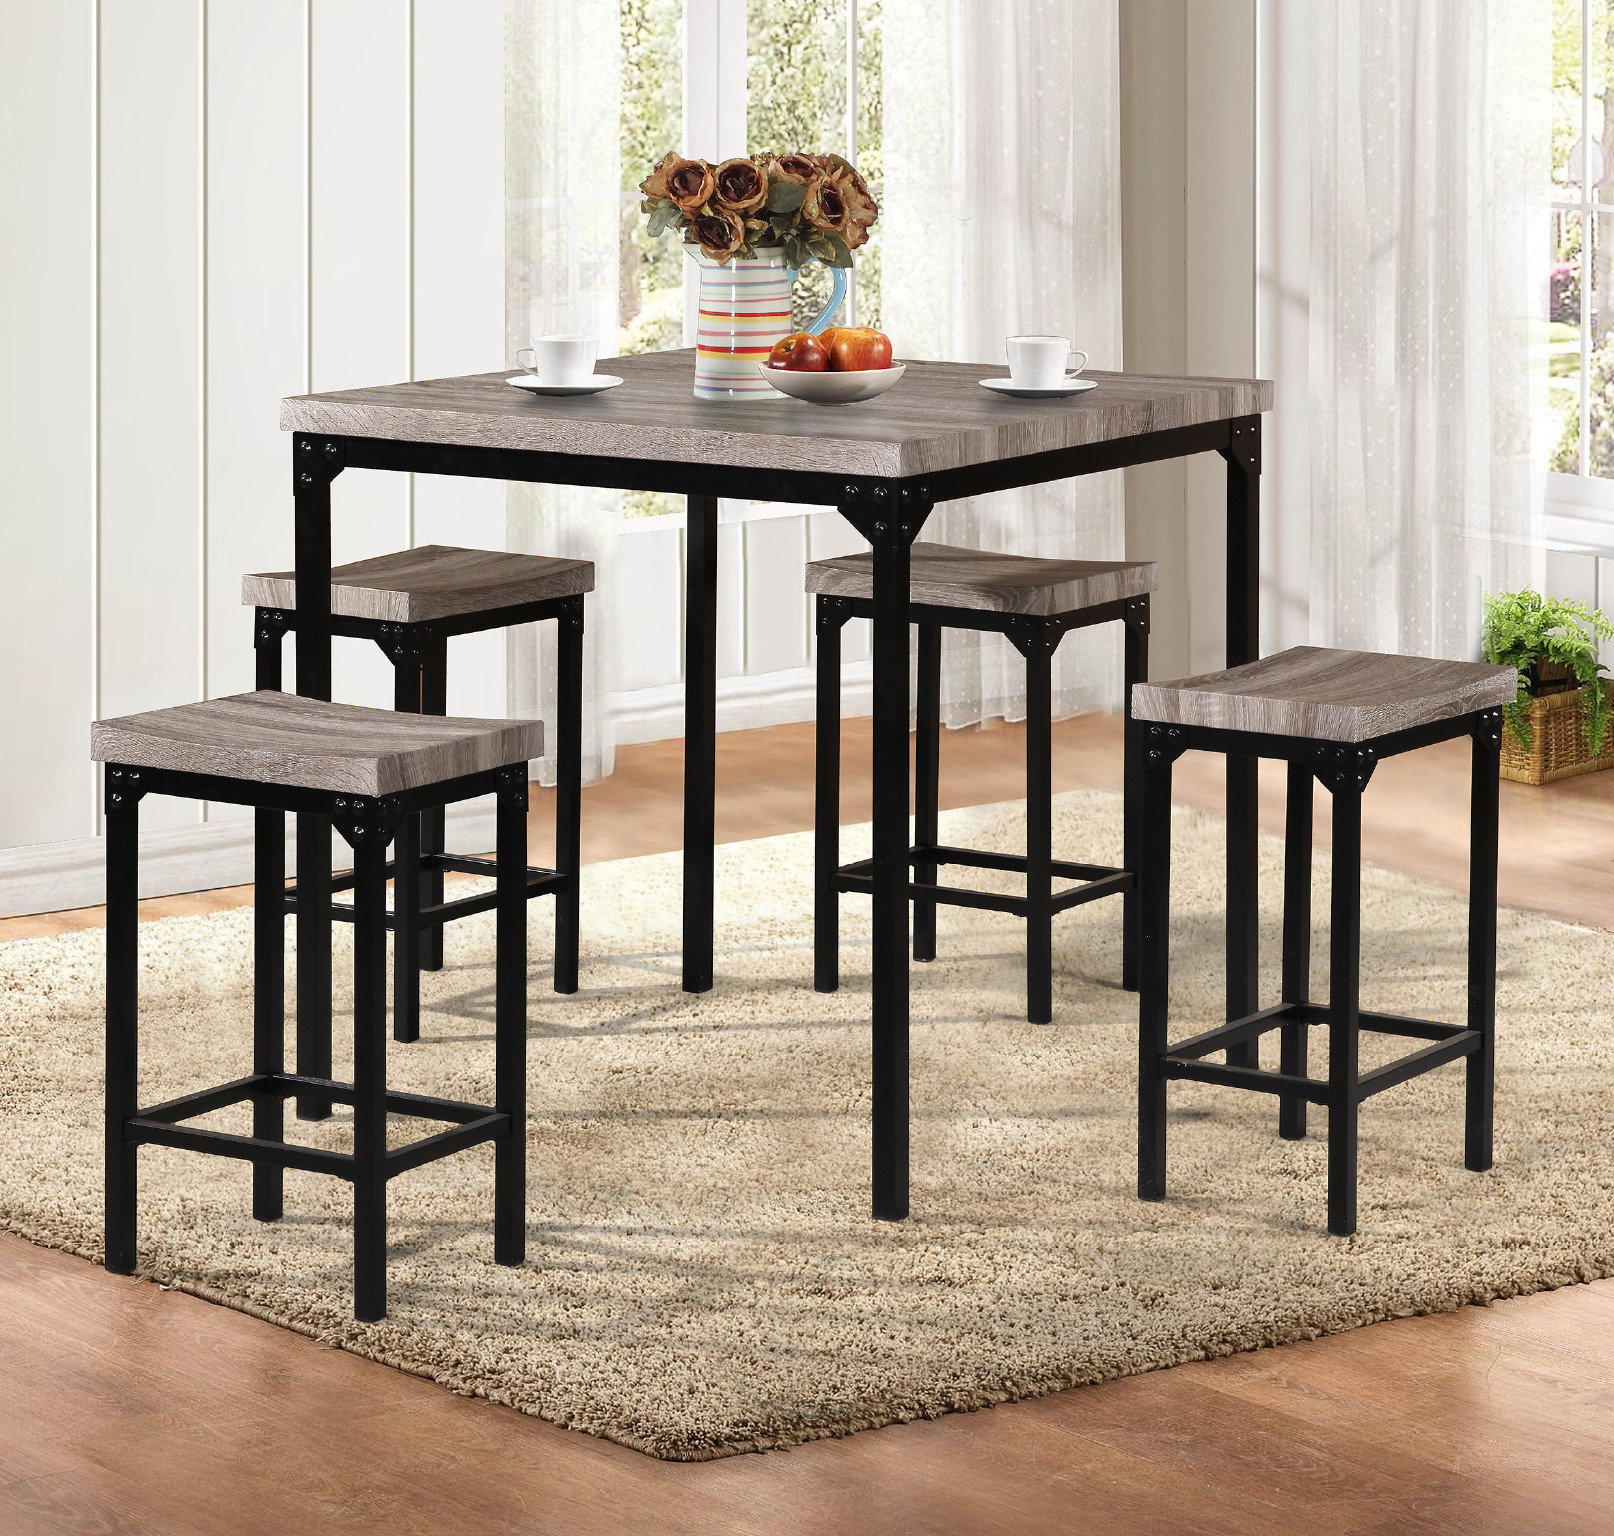 Denzel 5 Piece Counter Height Breakfast Nook Dining Sets Inside Widely Used Latitude Run Breen 5 Piece Pub Table Set (#3 of 20)